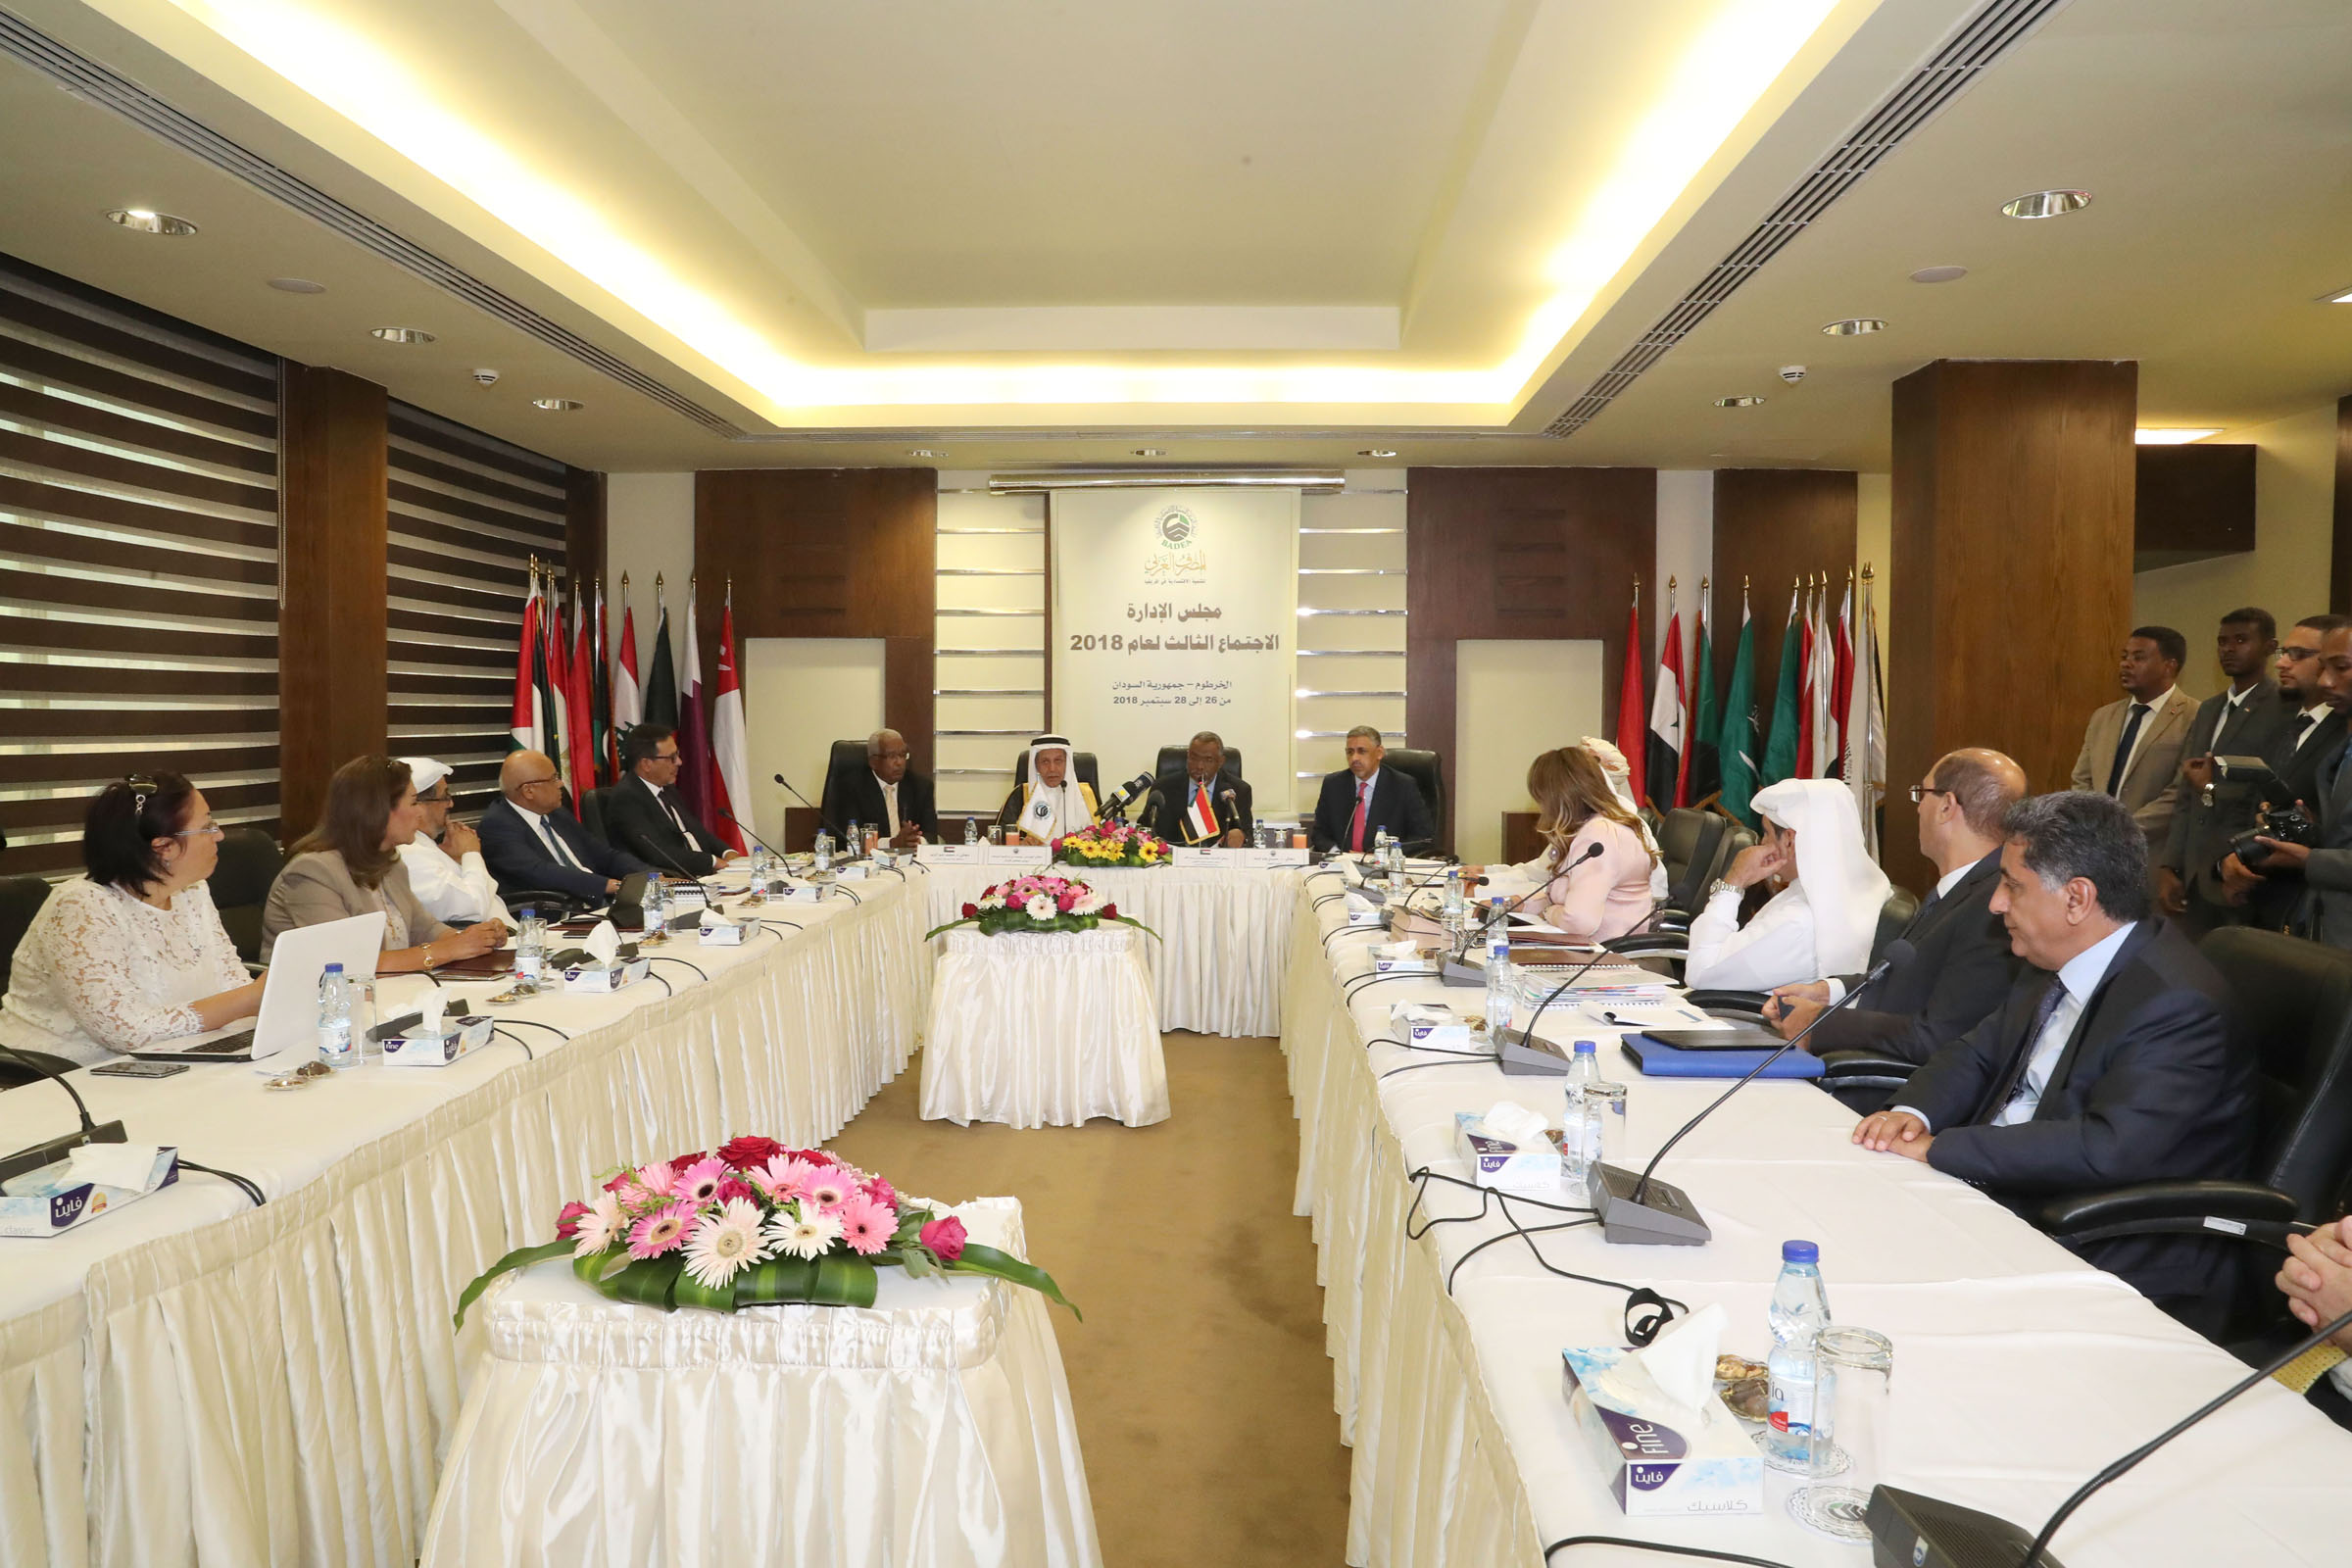 BADEA's Board of Directors winds up its 3rd meeting for the year 2018